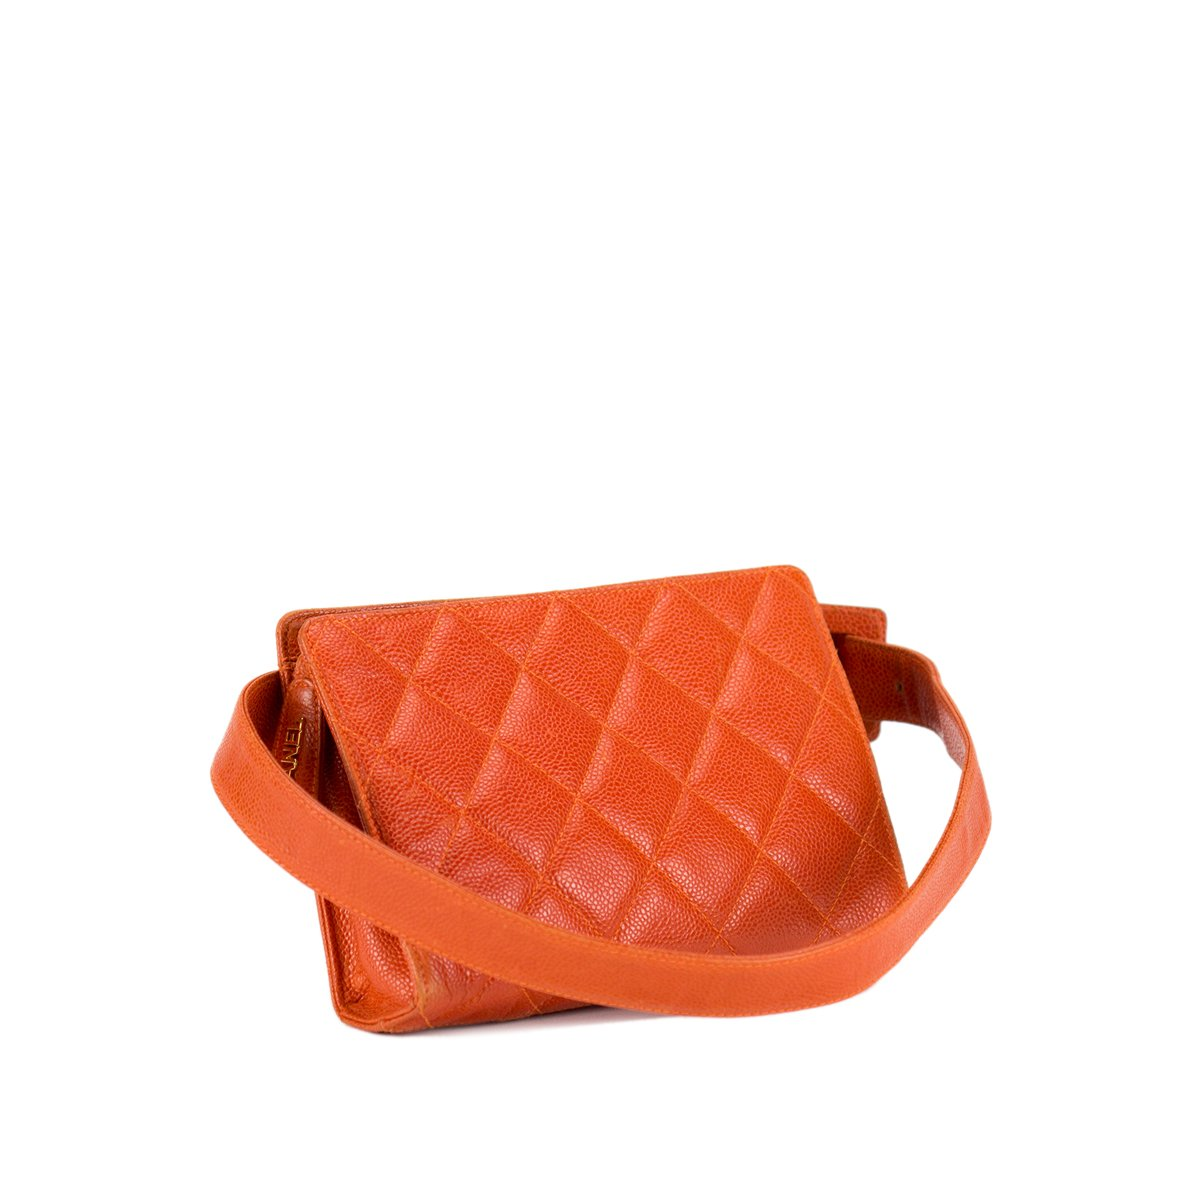 Chanel Orange Caviar Quilted Fanny